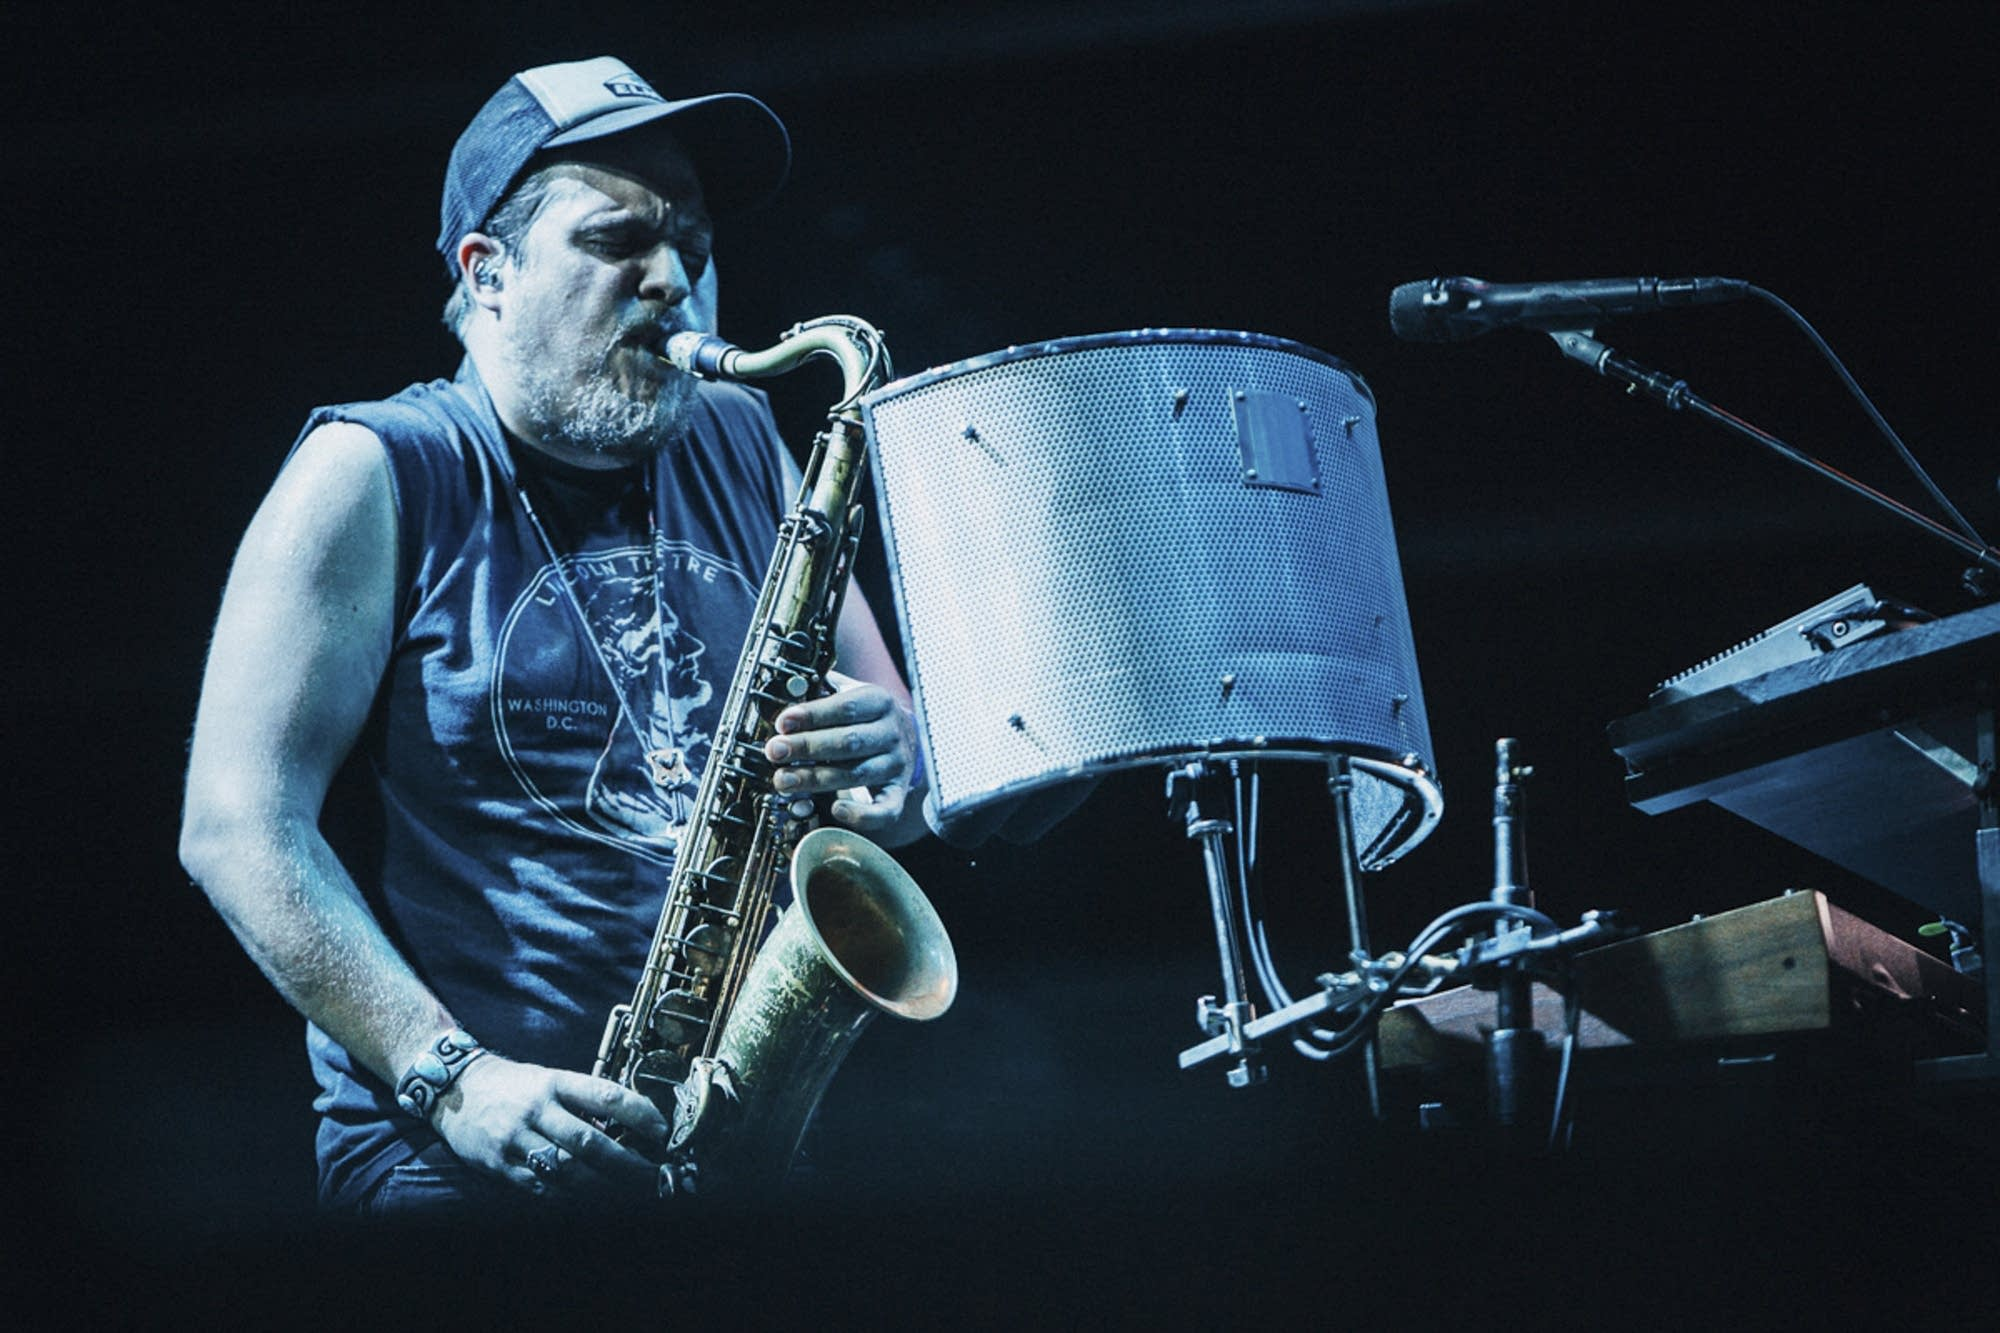 Saxophonist Mike Lewis of Bon Iver.